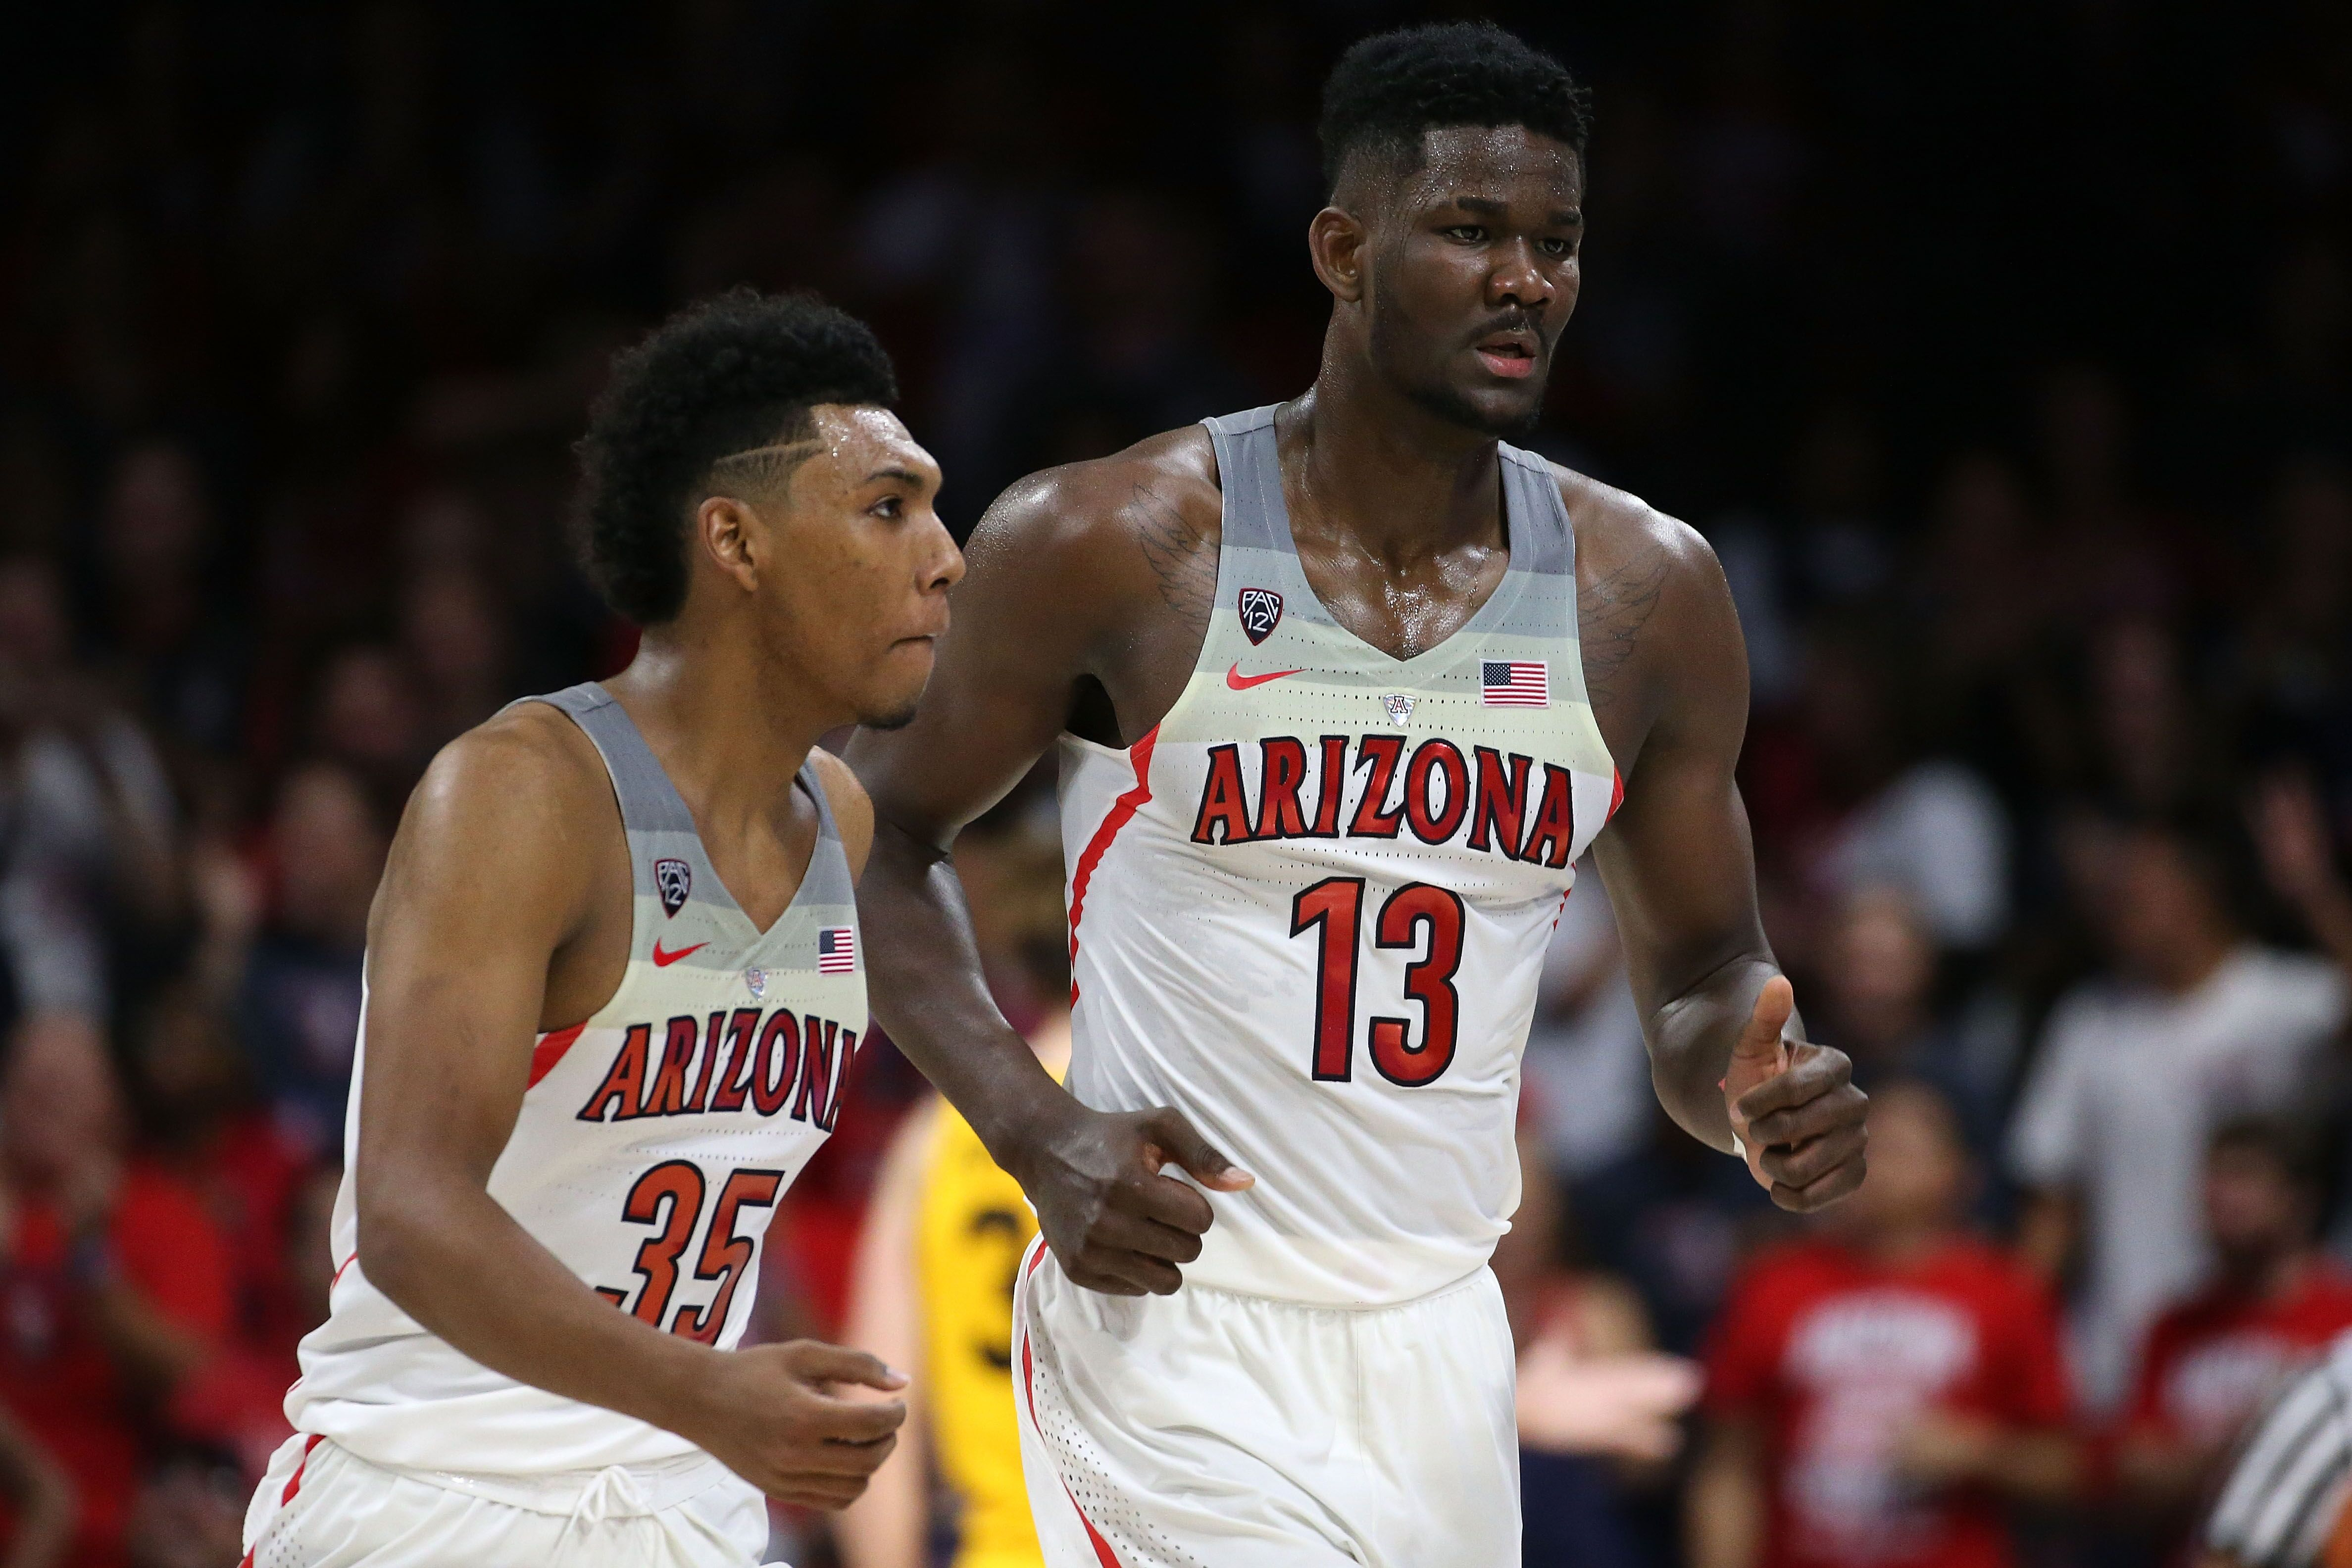 477f4f2571ef Arizona s Deandre Ayton and Allonzo Trier declare for NBA draft - NBA News